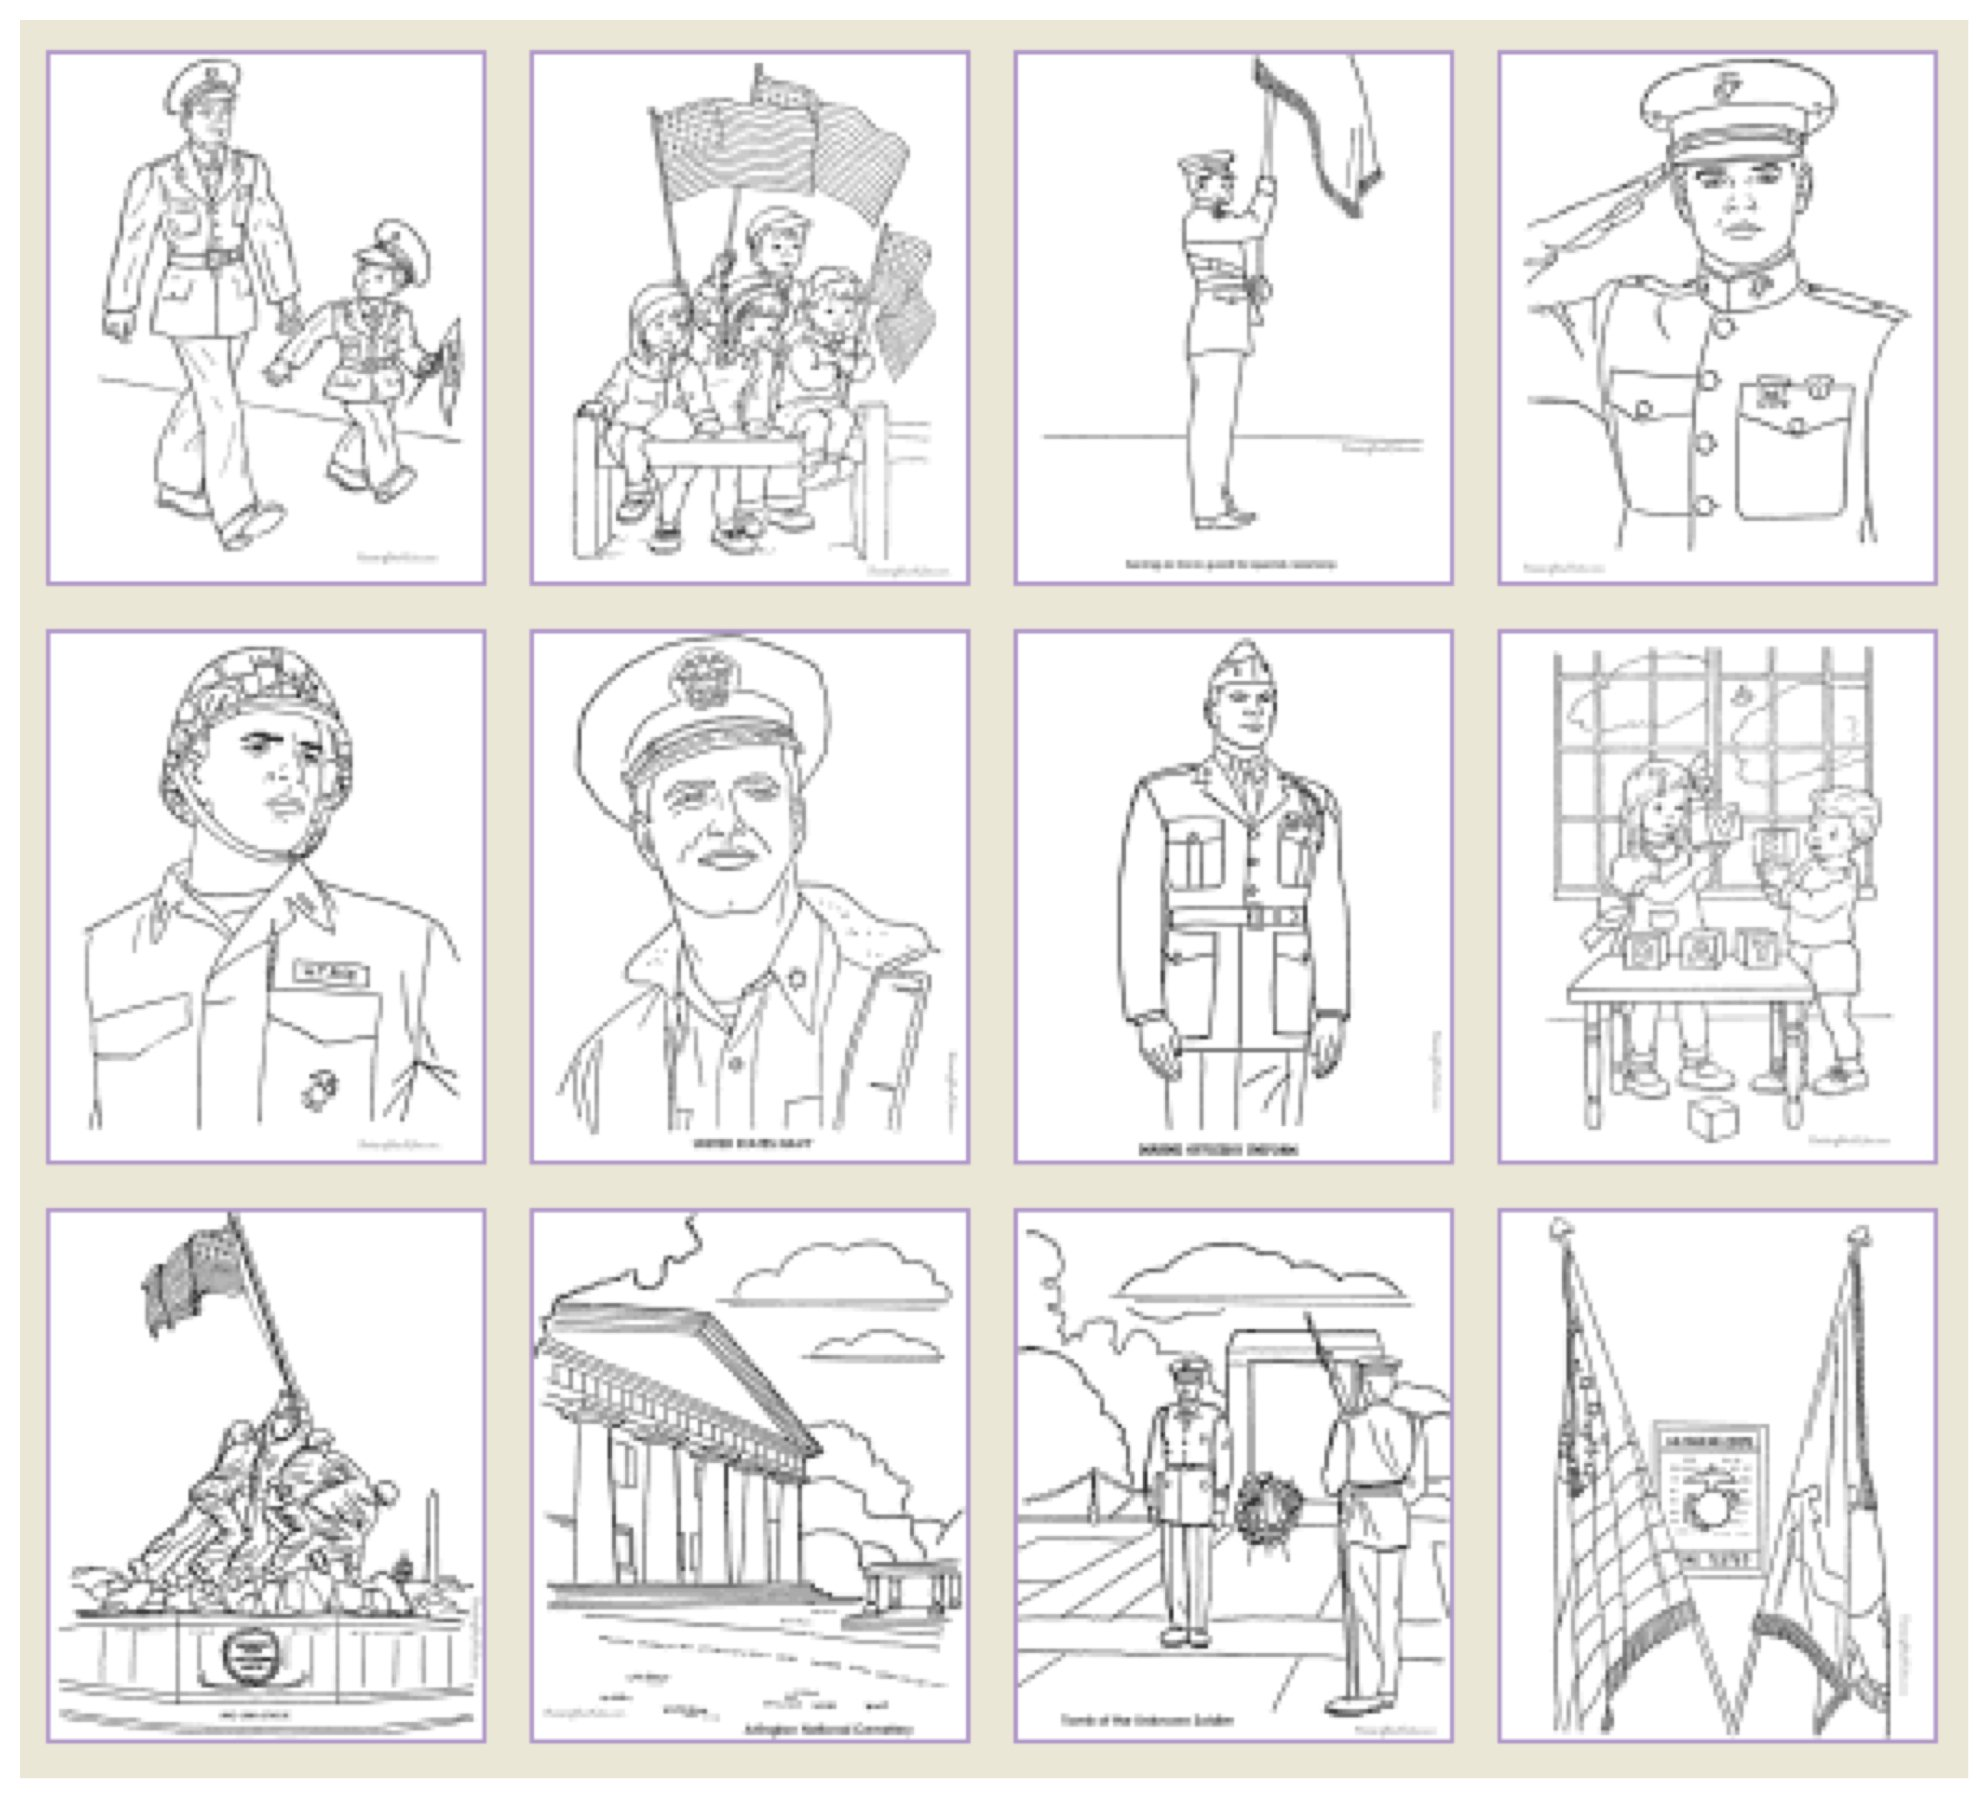 Free Printable Veterans Day Coloring Pages, Veterans Day Printable Games